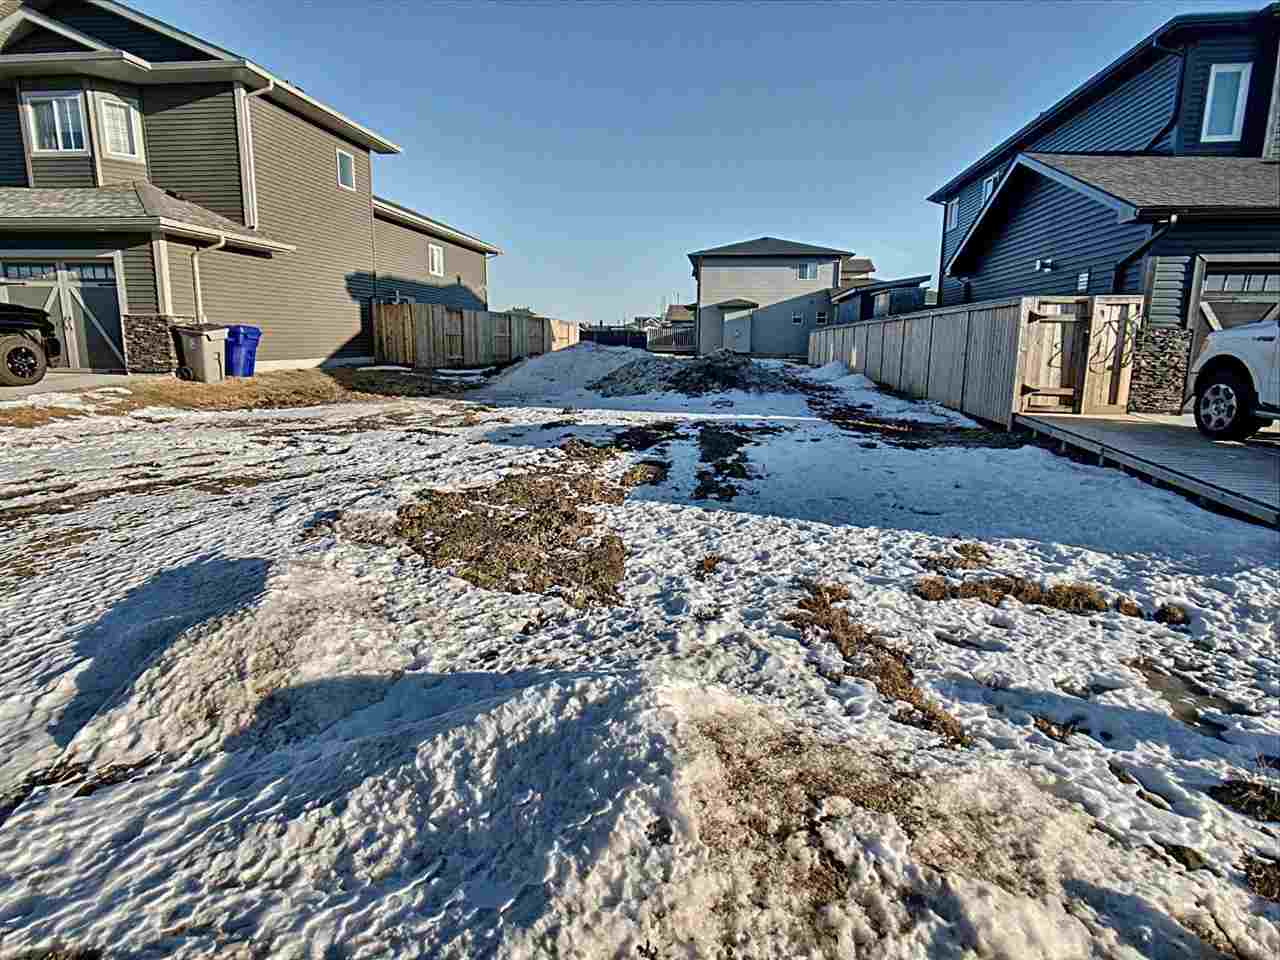 Lot 22.  Fully serviced lot available to build your dream home in a new neighborhood (West Woodlands) in family friendly Bruderheim, just 35 minutes from Edmonton and less than 15 minutes from the oil & gas plants in Fort Saskatchewan!  This quiet cul-de-sac lot has a 32 ft building pocket with 42 ft frontage and 114 ft lot depth (4836 sq ft) and both side neighbours already have side fences up so only the back needs to be fenced. Great location close to the town sports fields, campground, and brand new skate park. Tremendous small community for young families with a great K-9 school and several employment opportunities in the area. Architectural guidelines, geotechnical reports, land use district, subdivision plan, and engineering package is available and included with the lot.